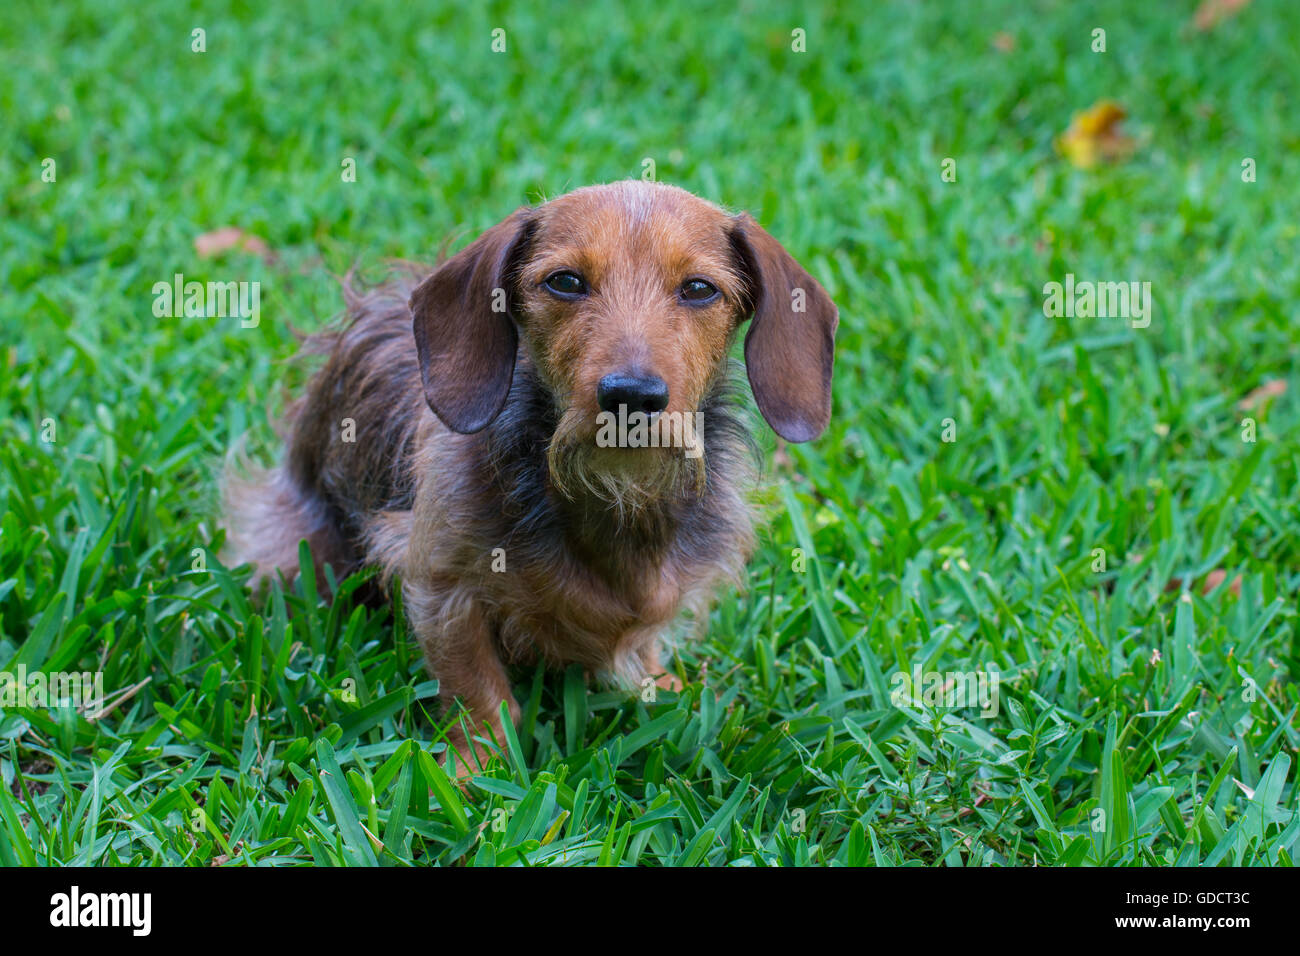 Wire Hair Dachshund in grass looking at camera - Stock Image